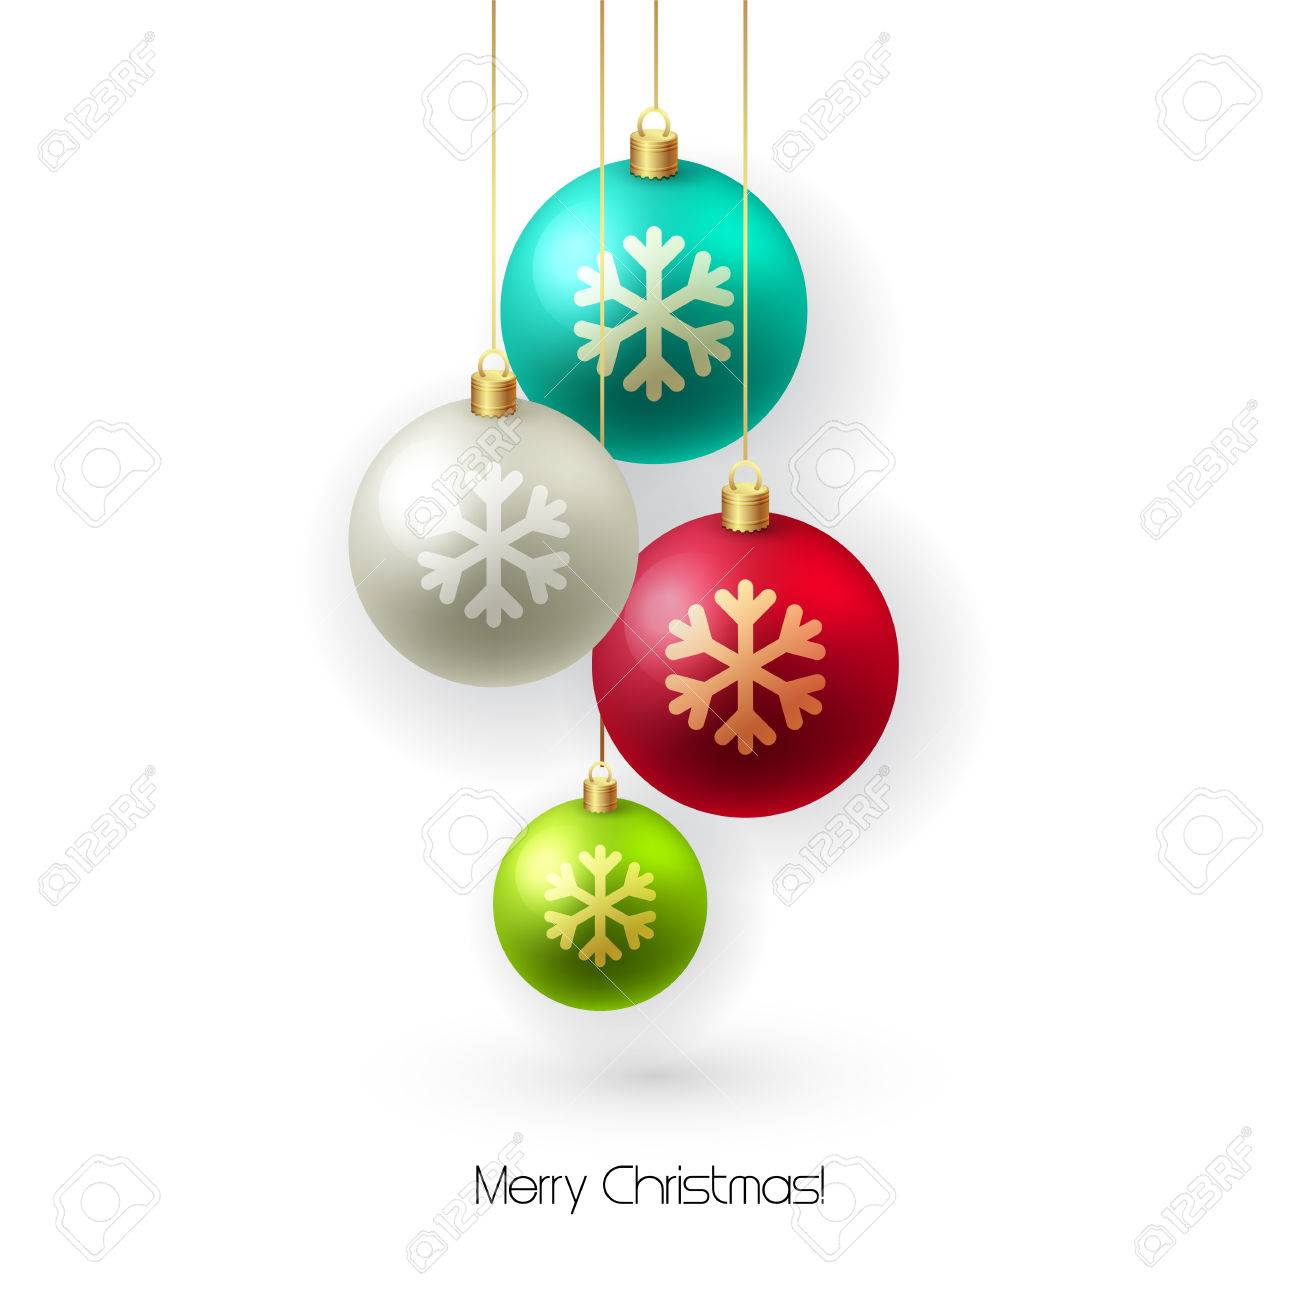 Christmas card with baubles. Christmas tree decoration. Vector illustration. - 45915950